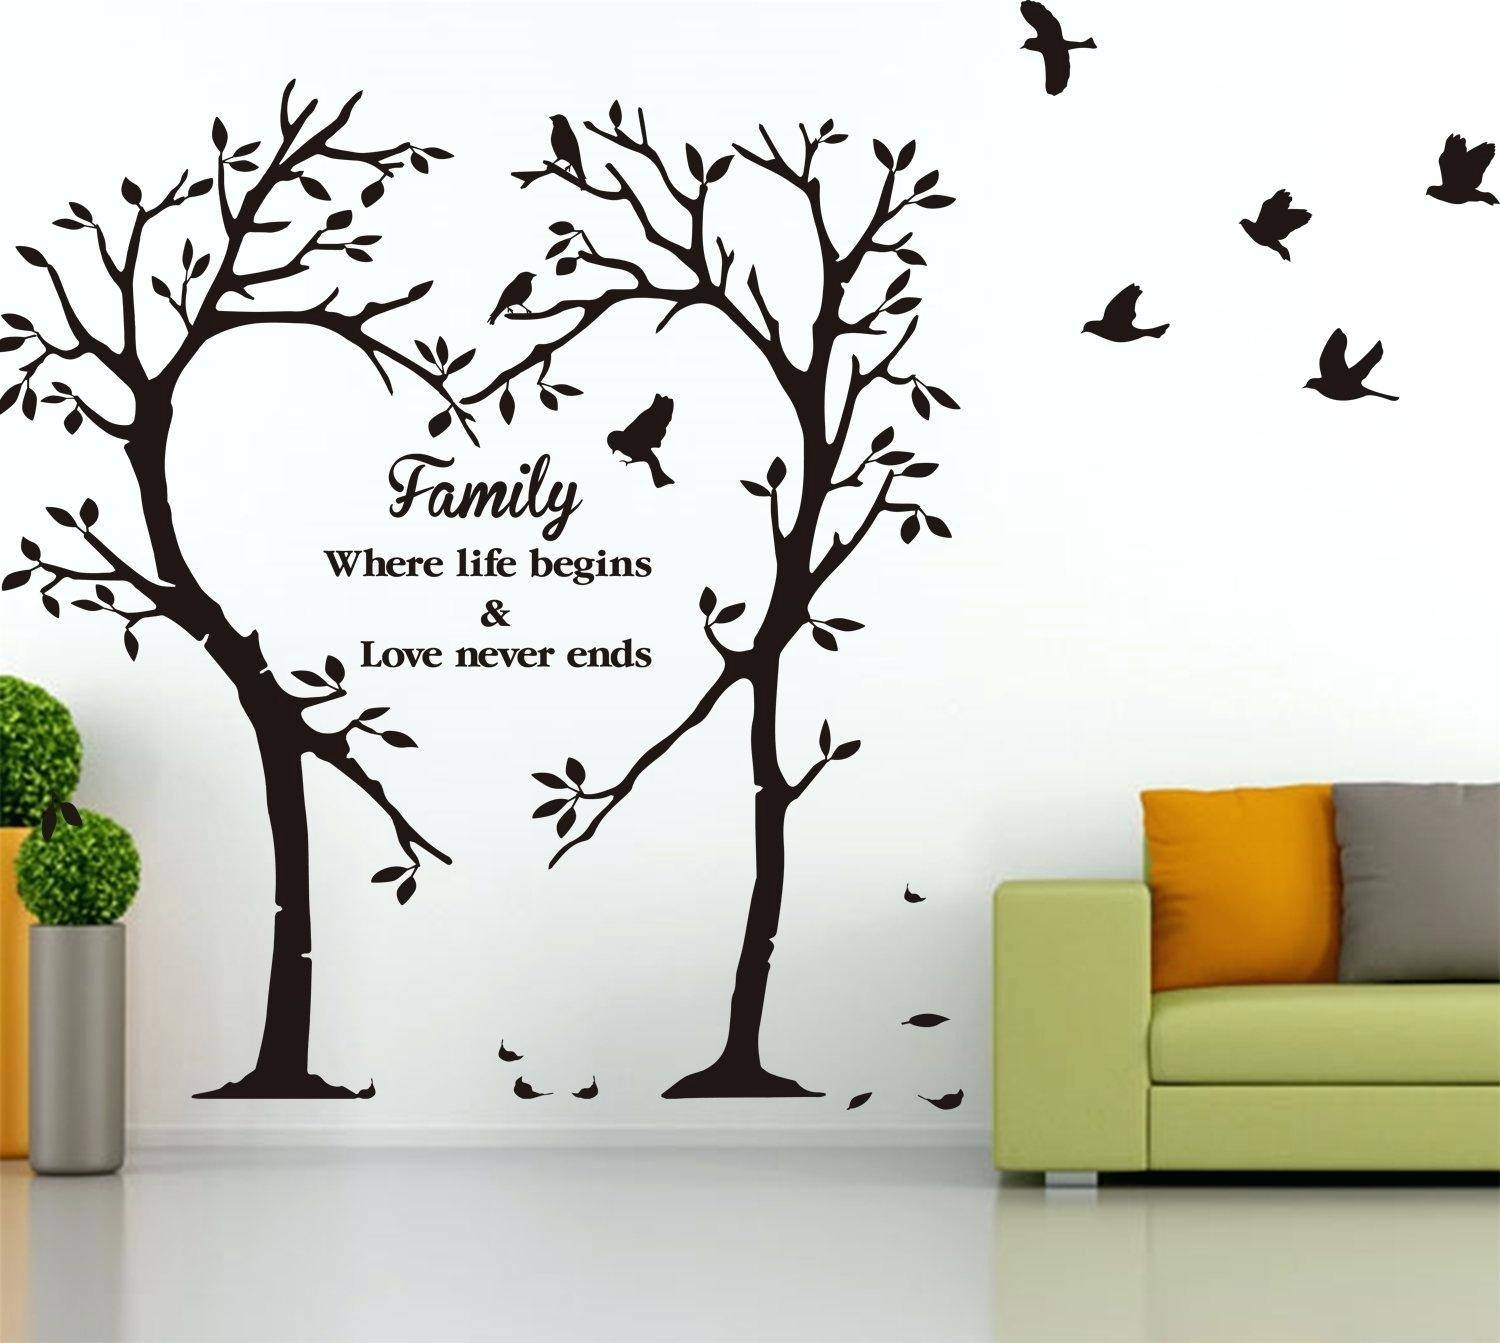 Vinyl Wall Decals Family Tree Wall Ideas Palm Tree Wall Art Decals Intended For 2017 Vinyl Wall Art Tree (View 16 of 20)